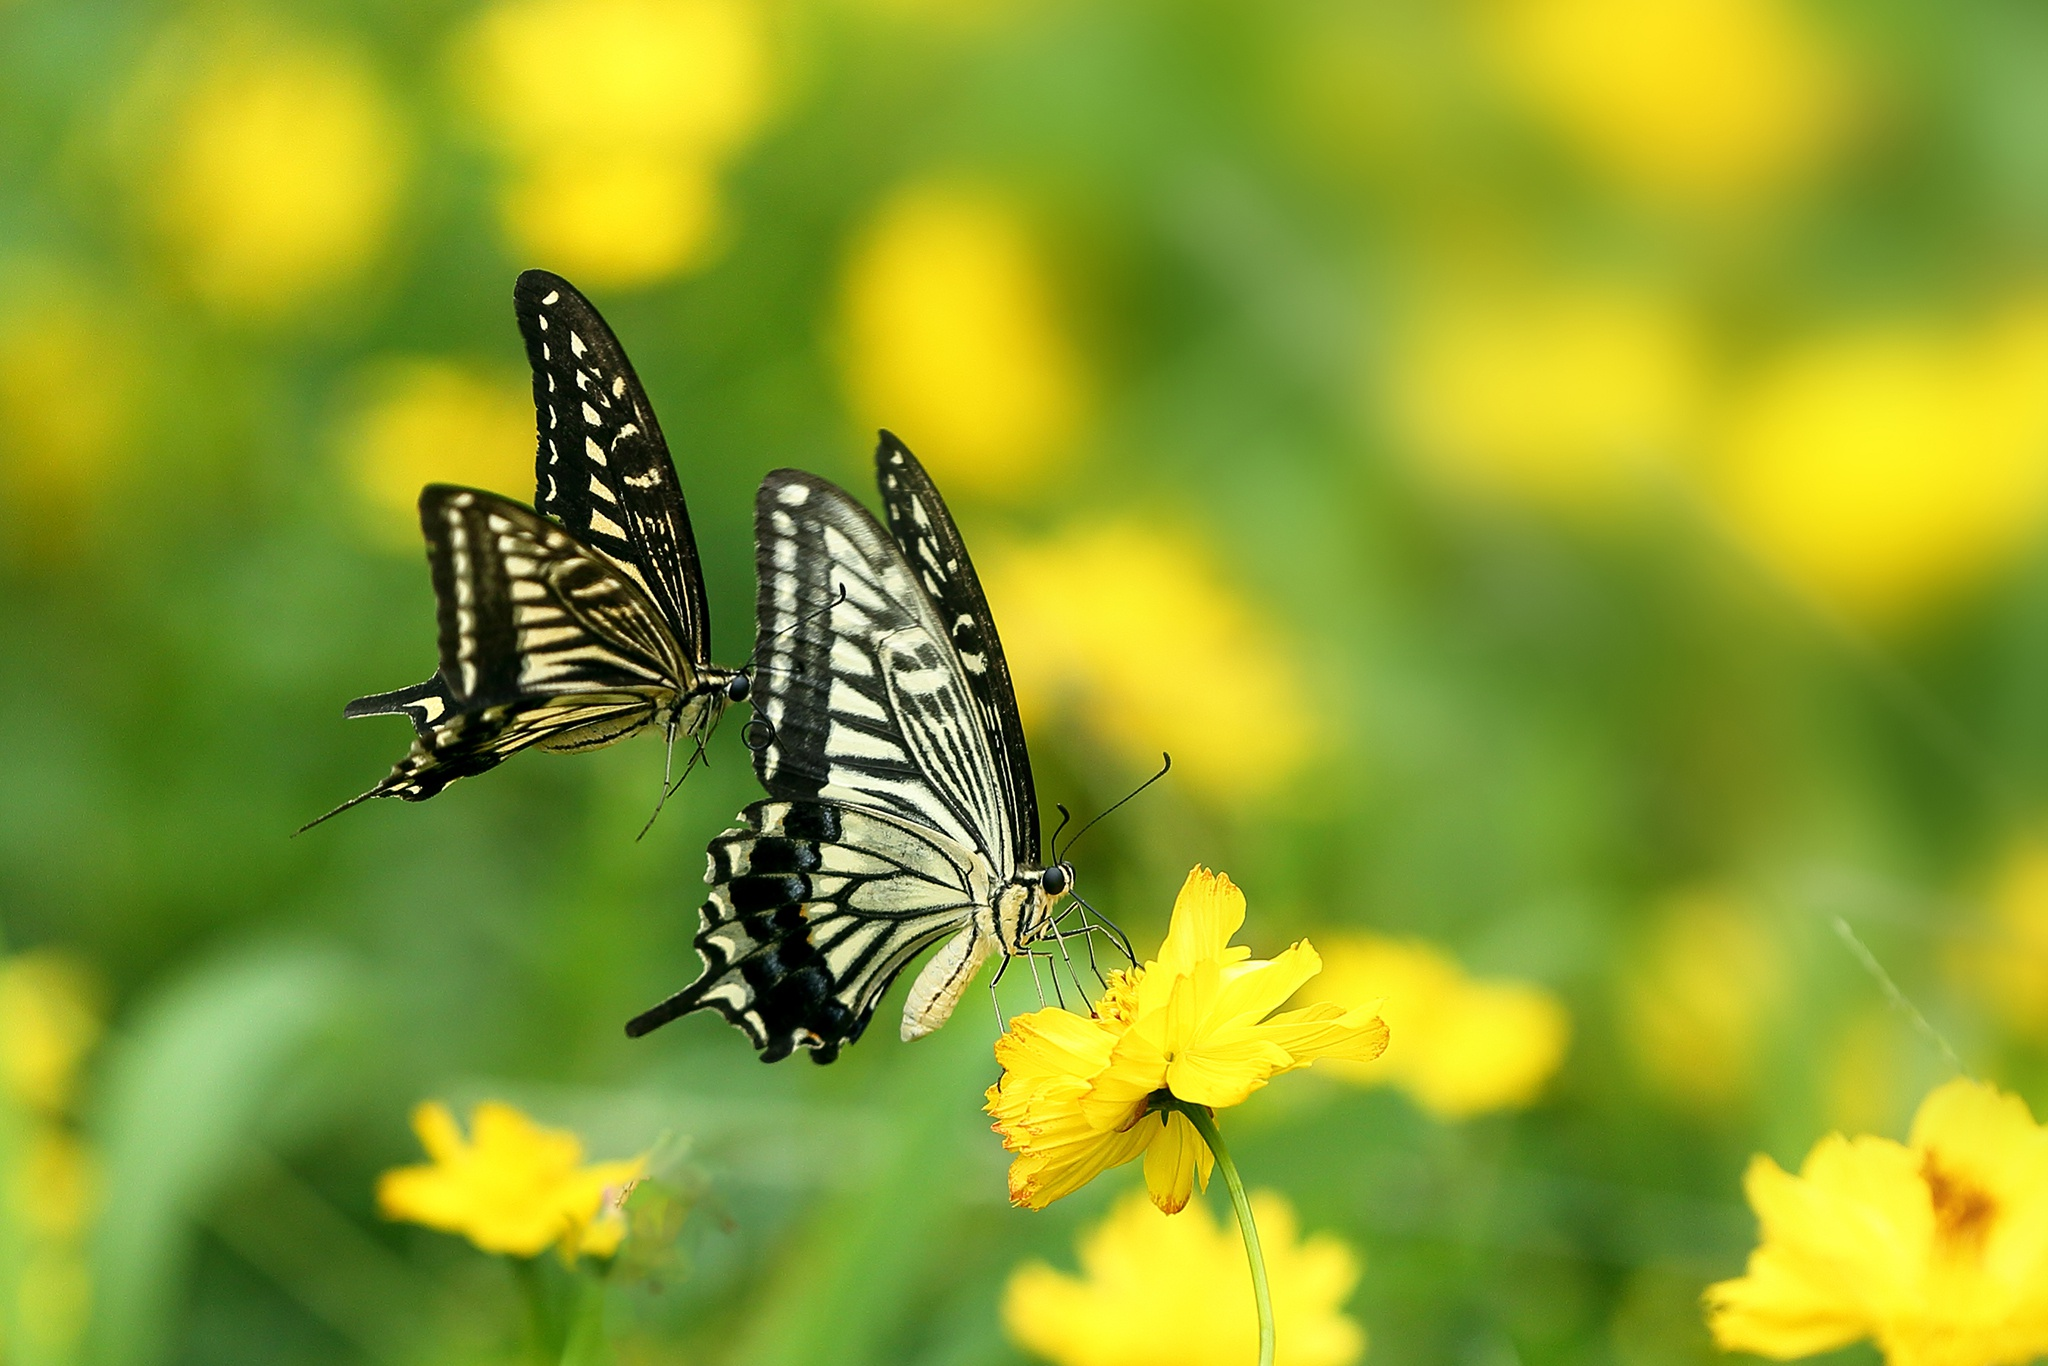 Butterfly HD Wallpaper | Background Image | 2048x1366 | ID ...